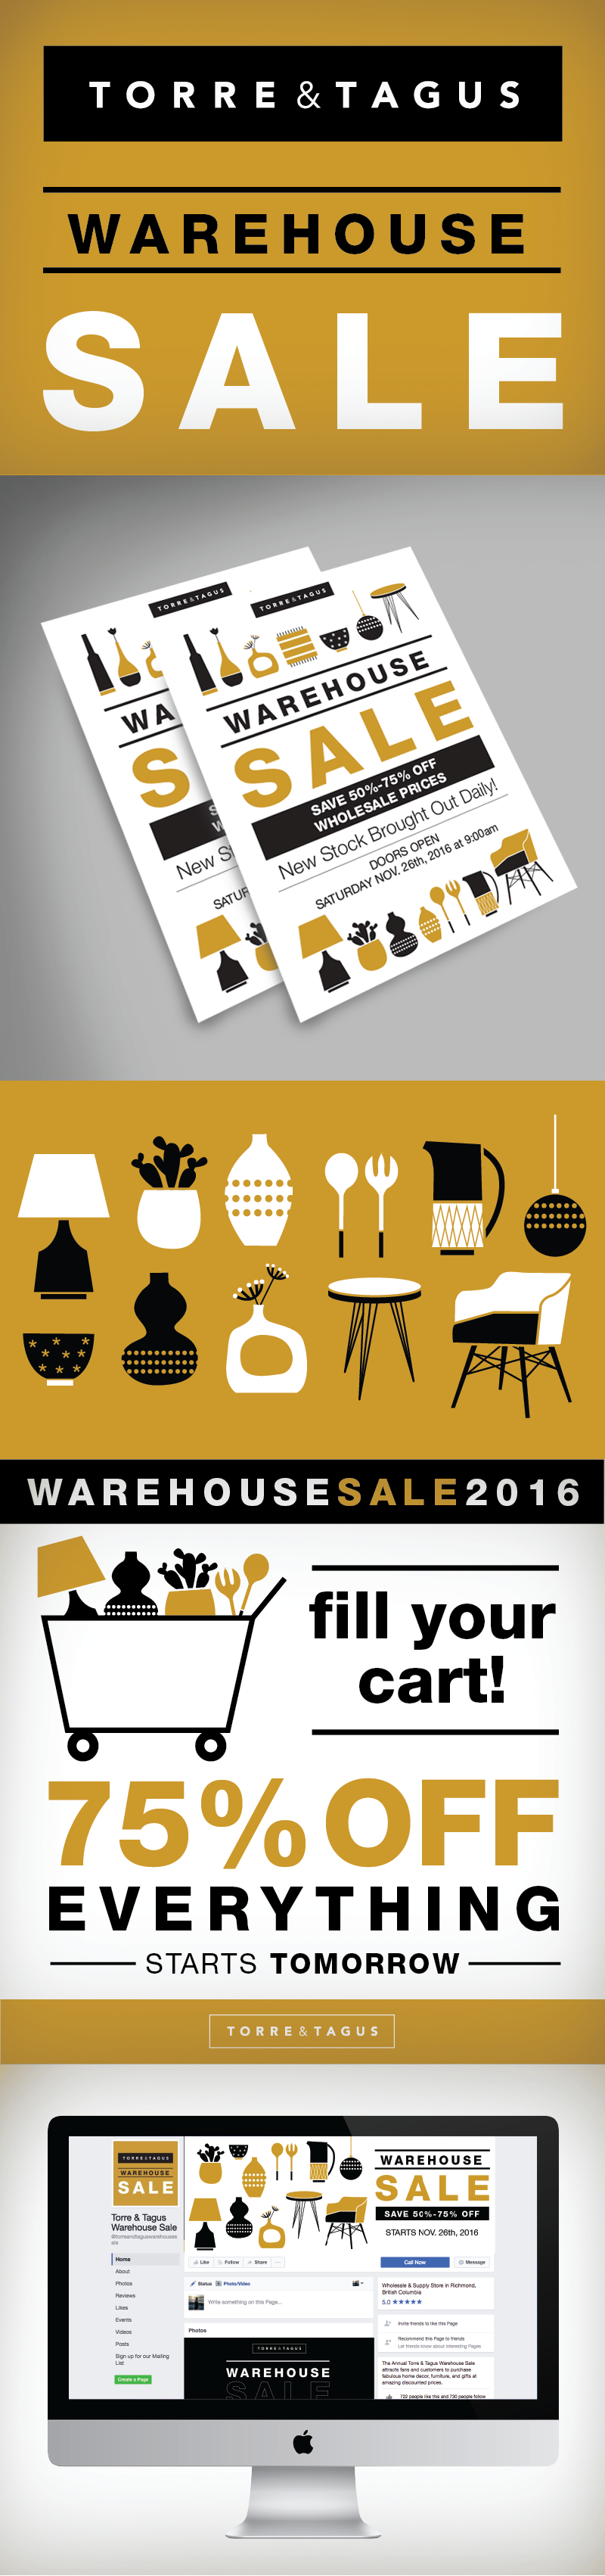 Torre & Tagus Warehouse Sale